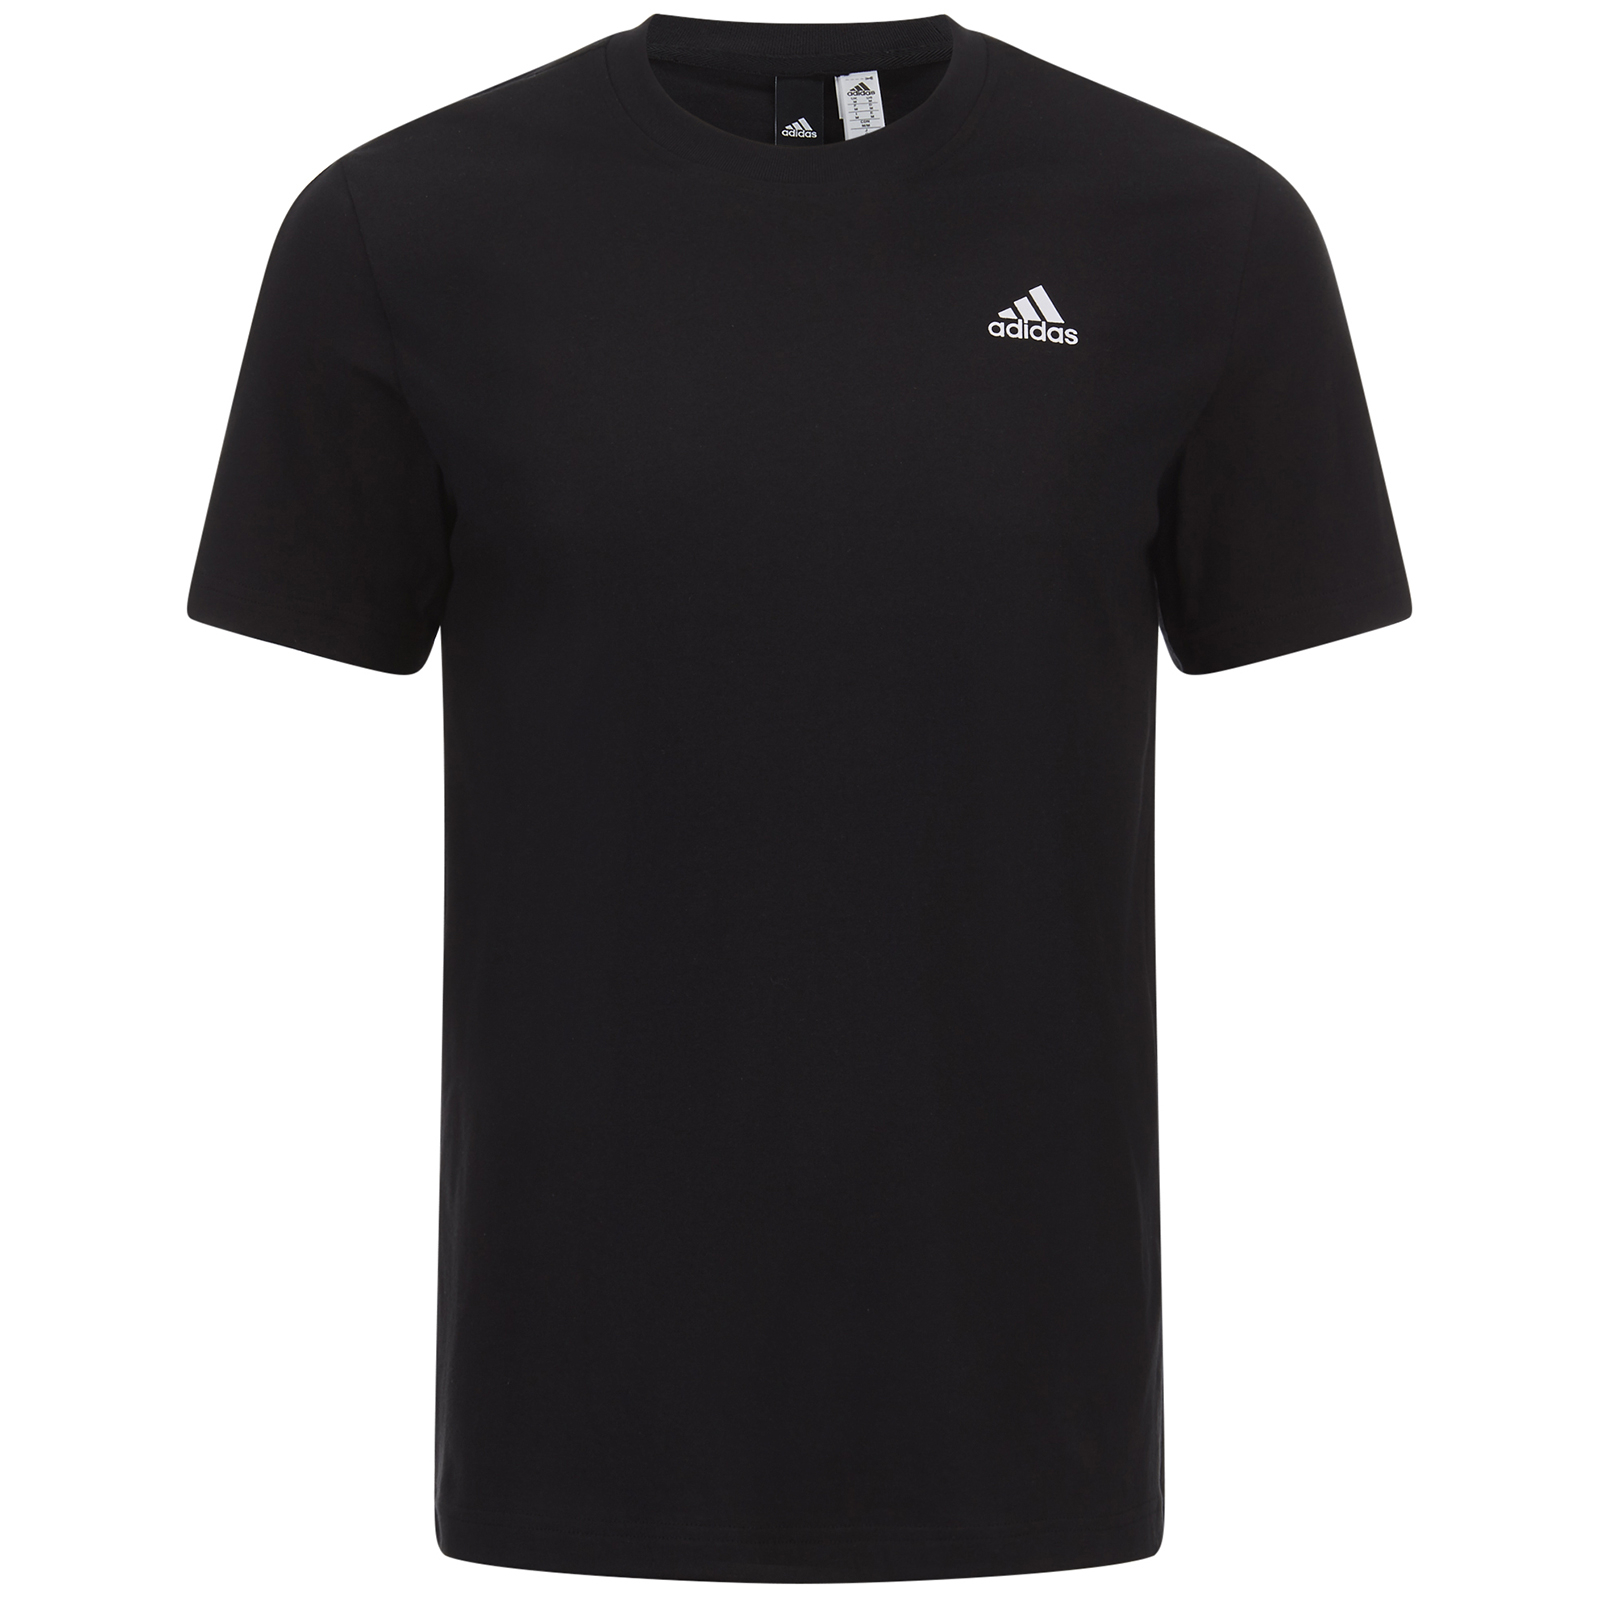 T-Shirt Homme Essential Base adidas -Noir